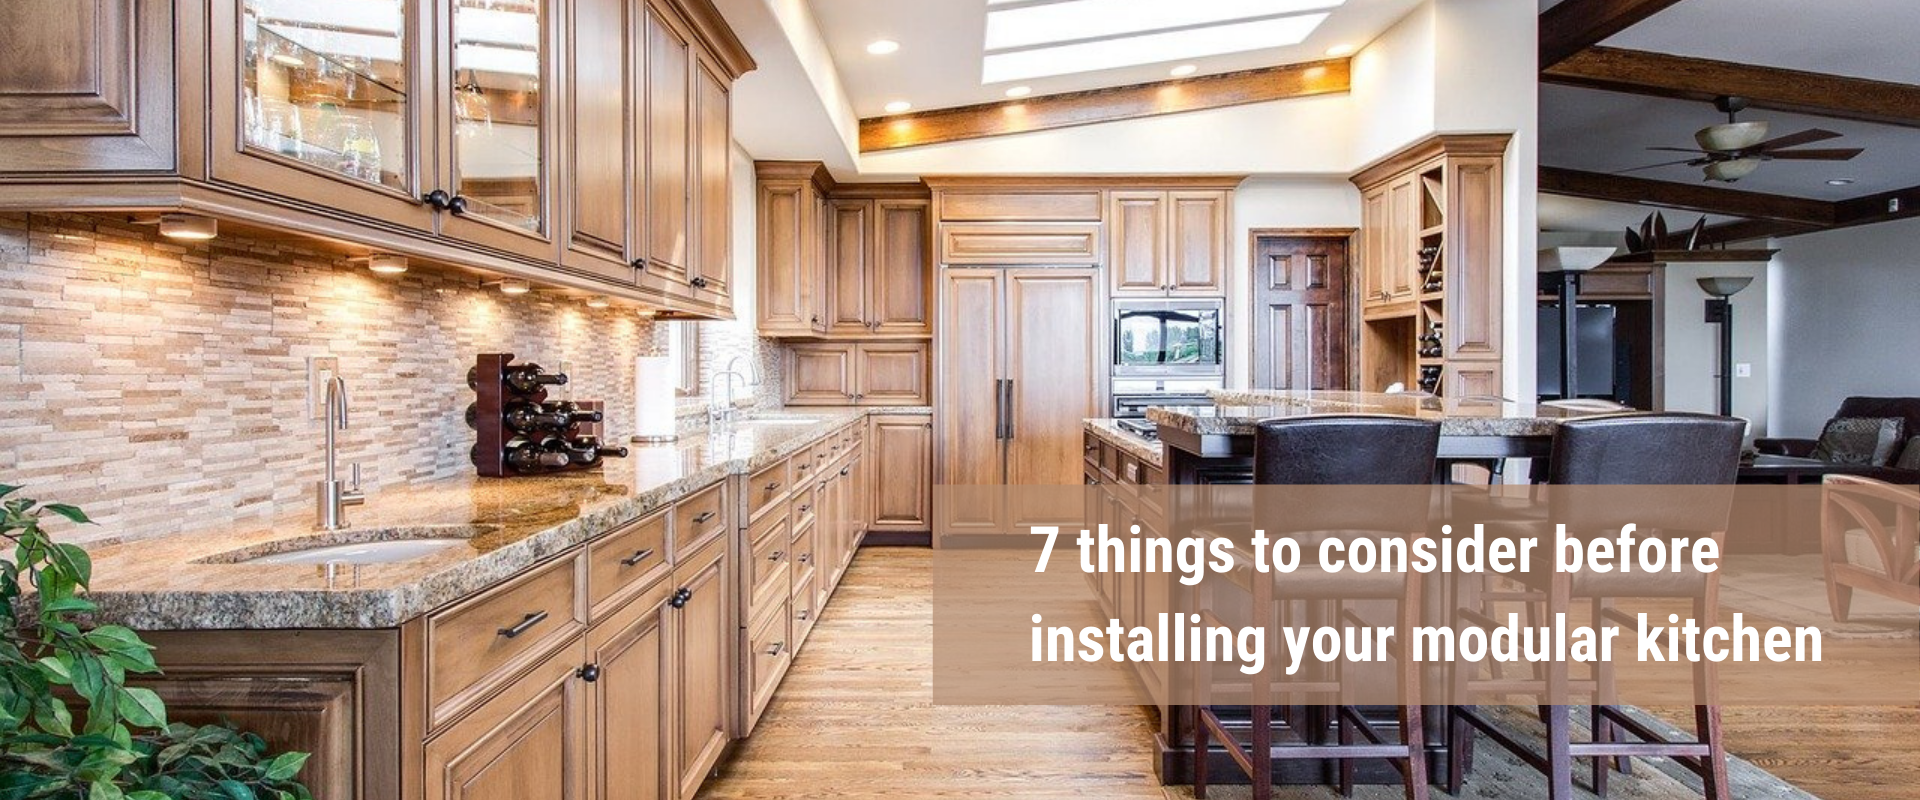 7 things to consider before installing your modular kitchen